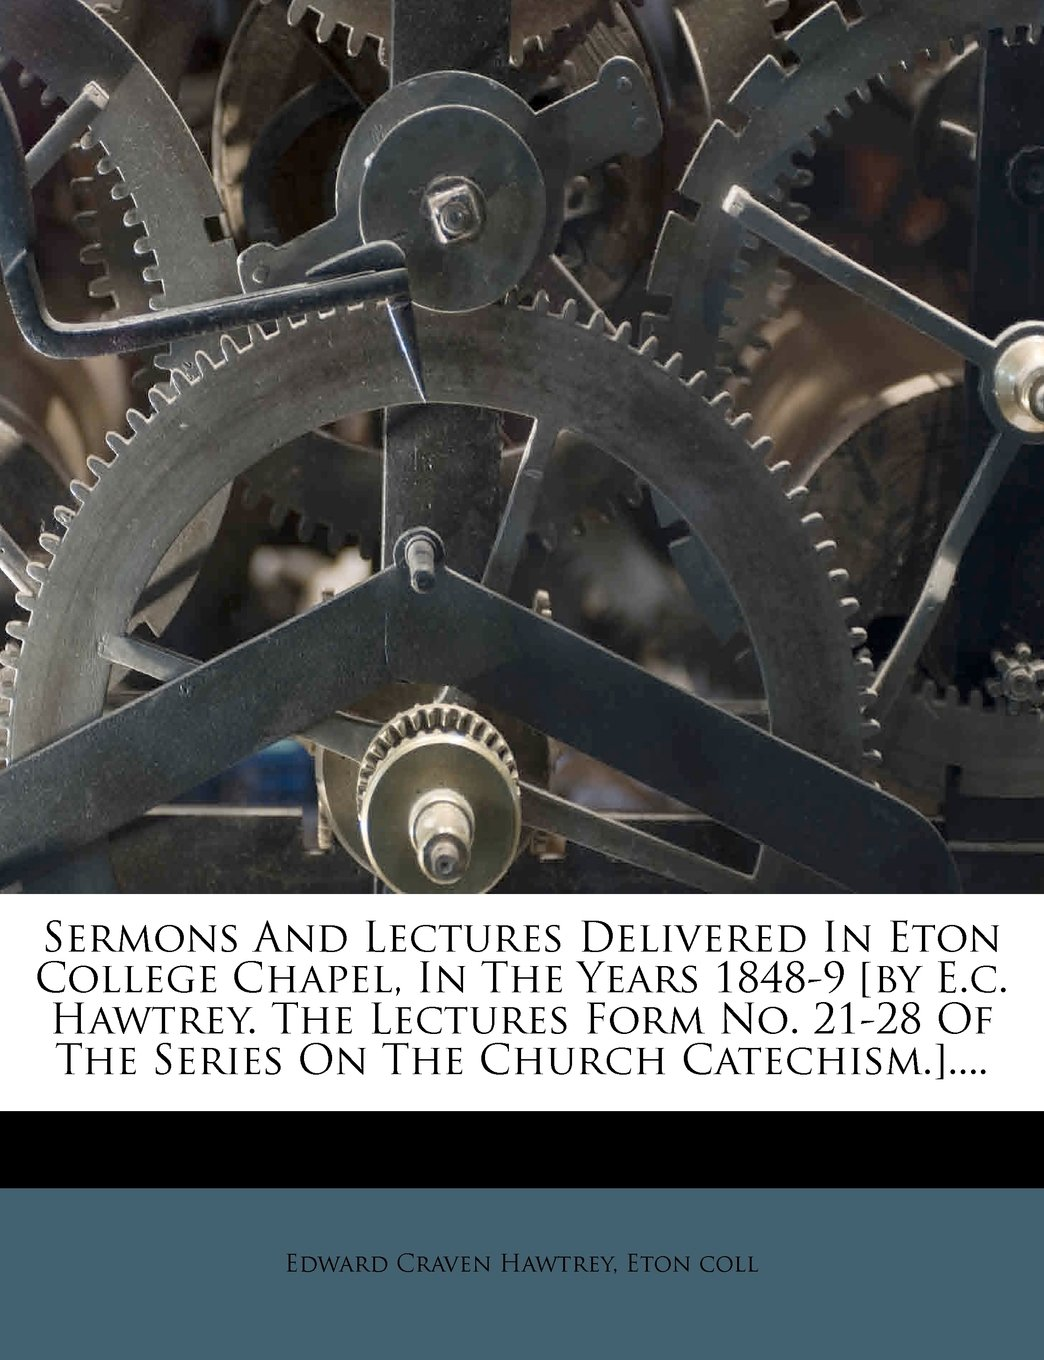 Download Sermons And Lectures Delivered In Eton College Chapel, In The Years 1848-9 [by E.c. Hawtrey. The Lectures Form No. 21-28 Of The Series On The Church Catechism.].... ebook